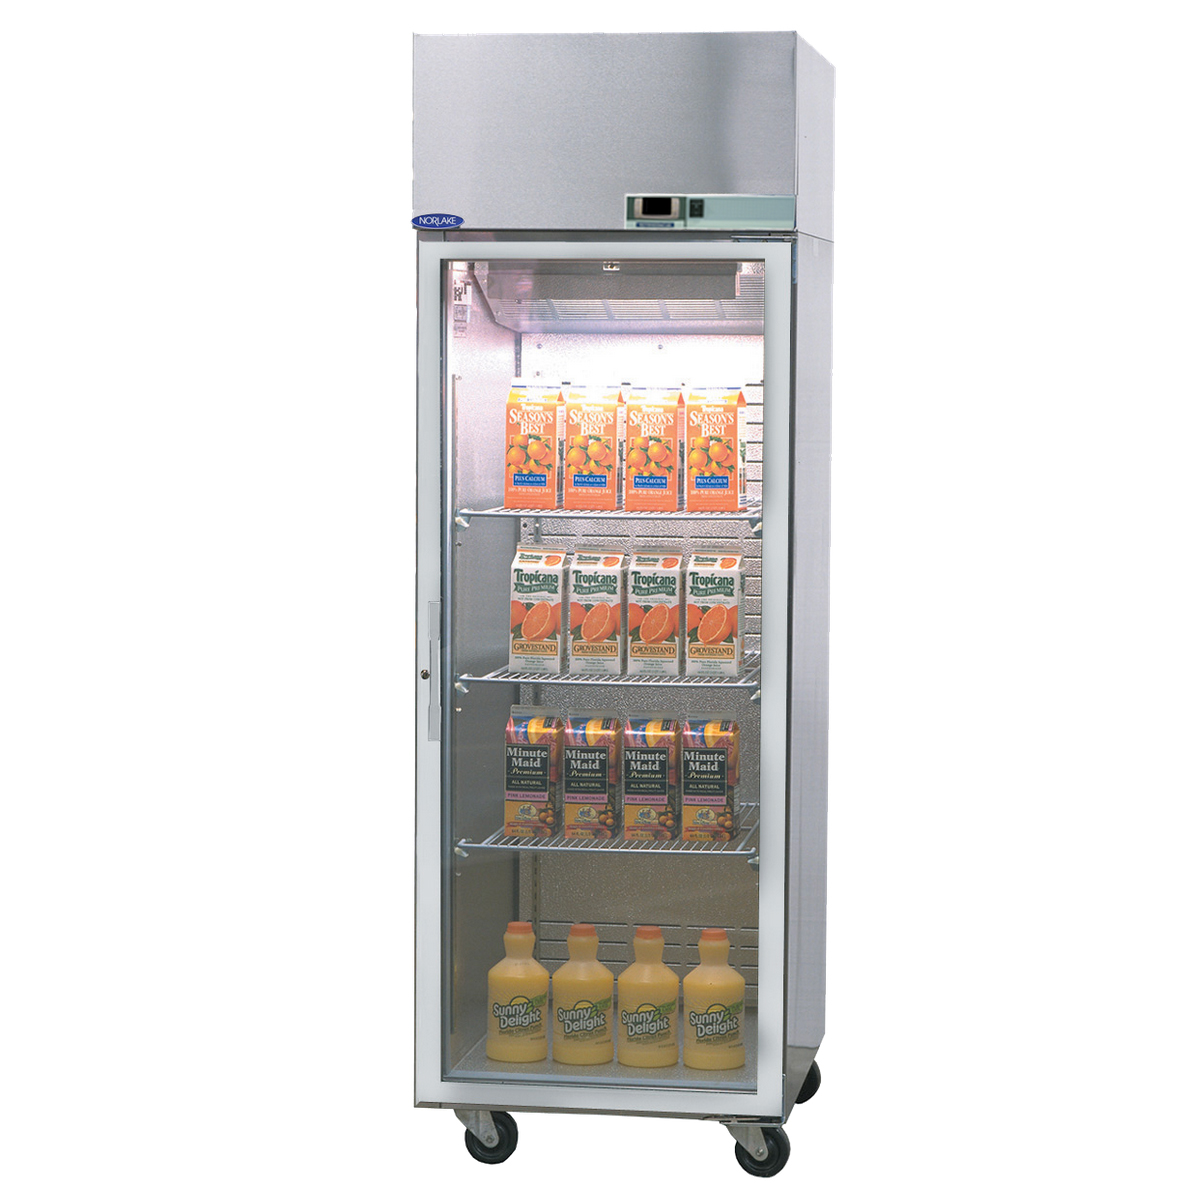 Nor-Lake NR242SSG/0R refrigerator, reach-in